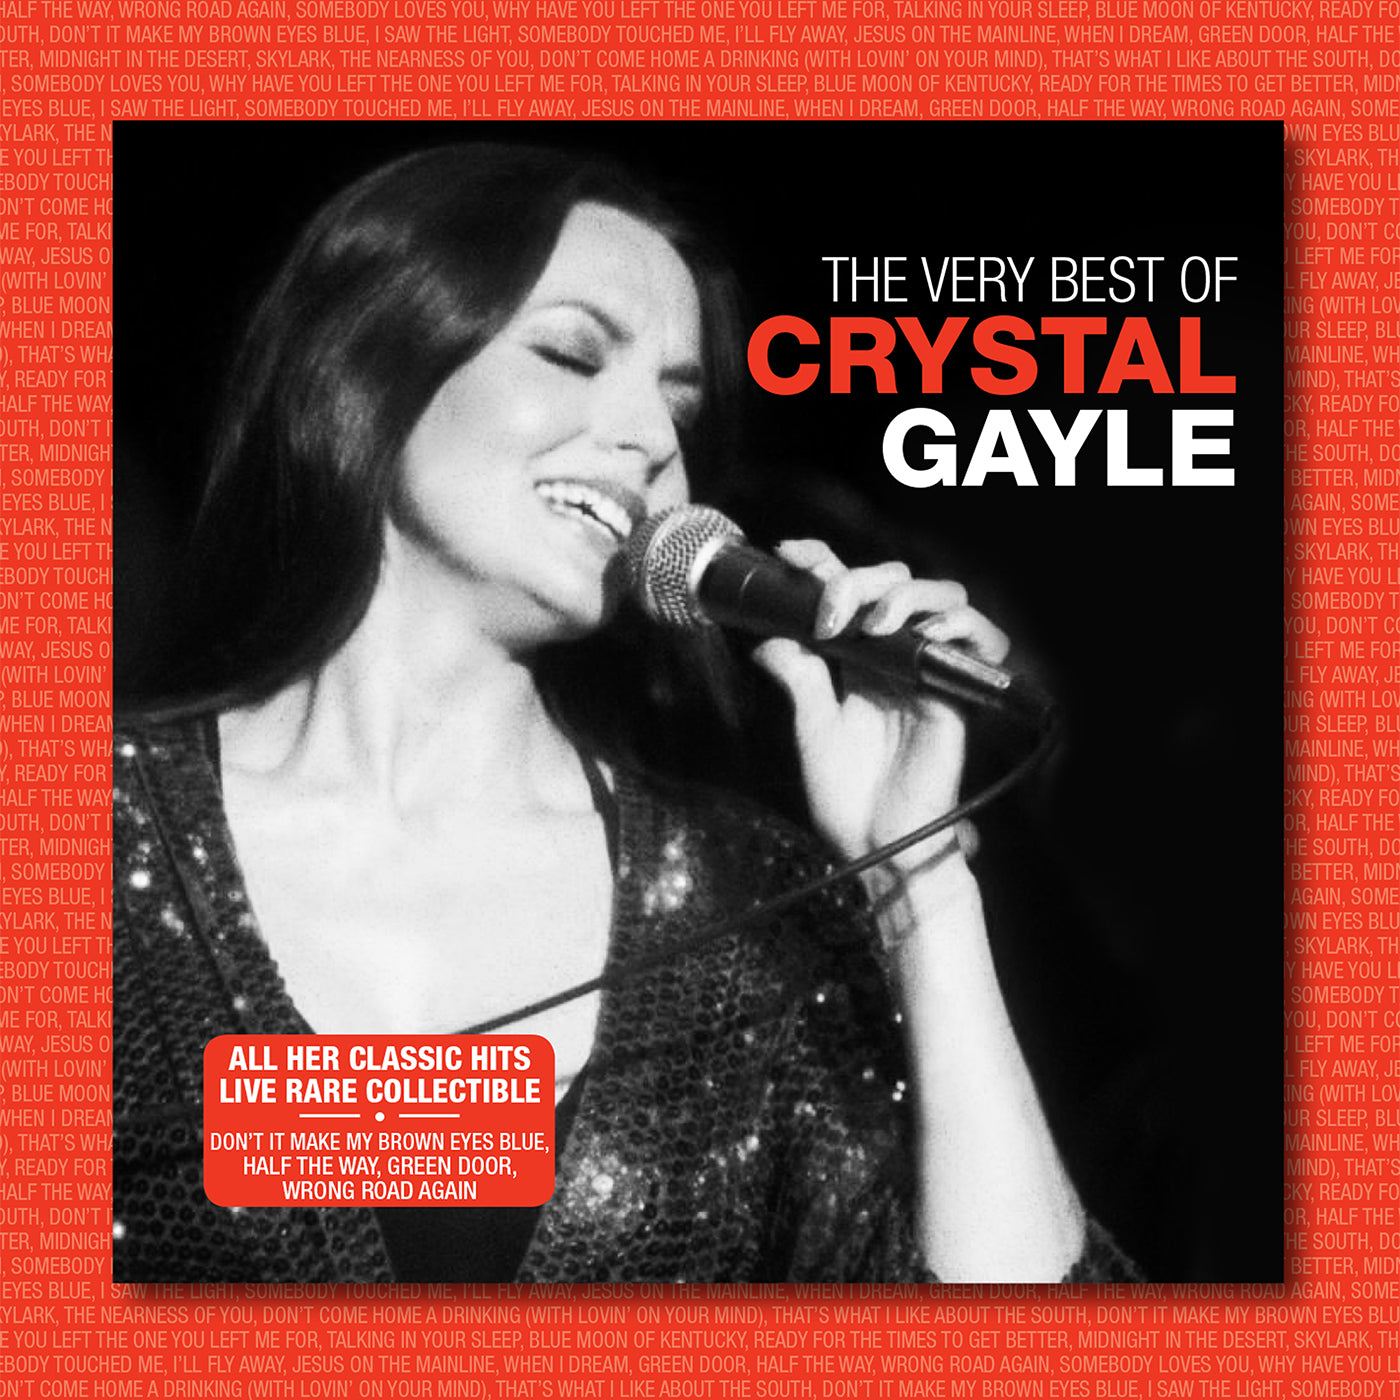 FANFARE224 - CYRSTAL GAYLE - THE VERY BE